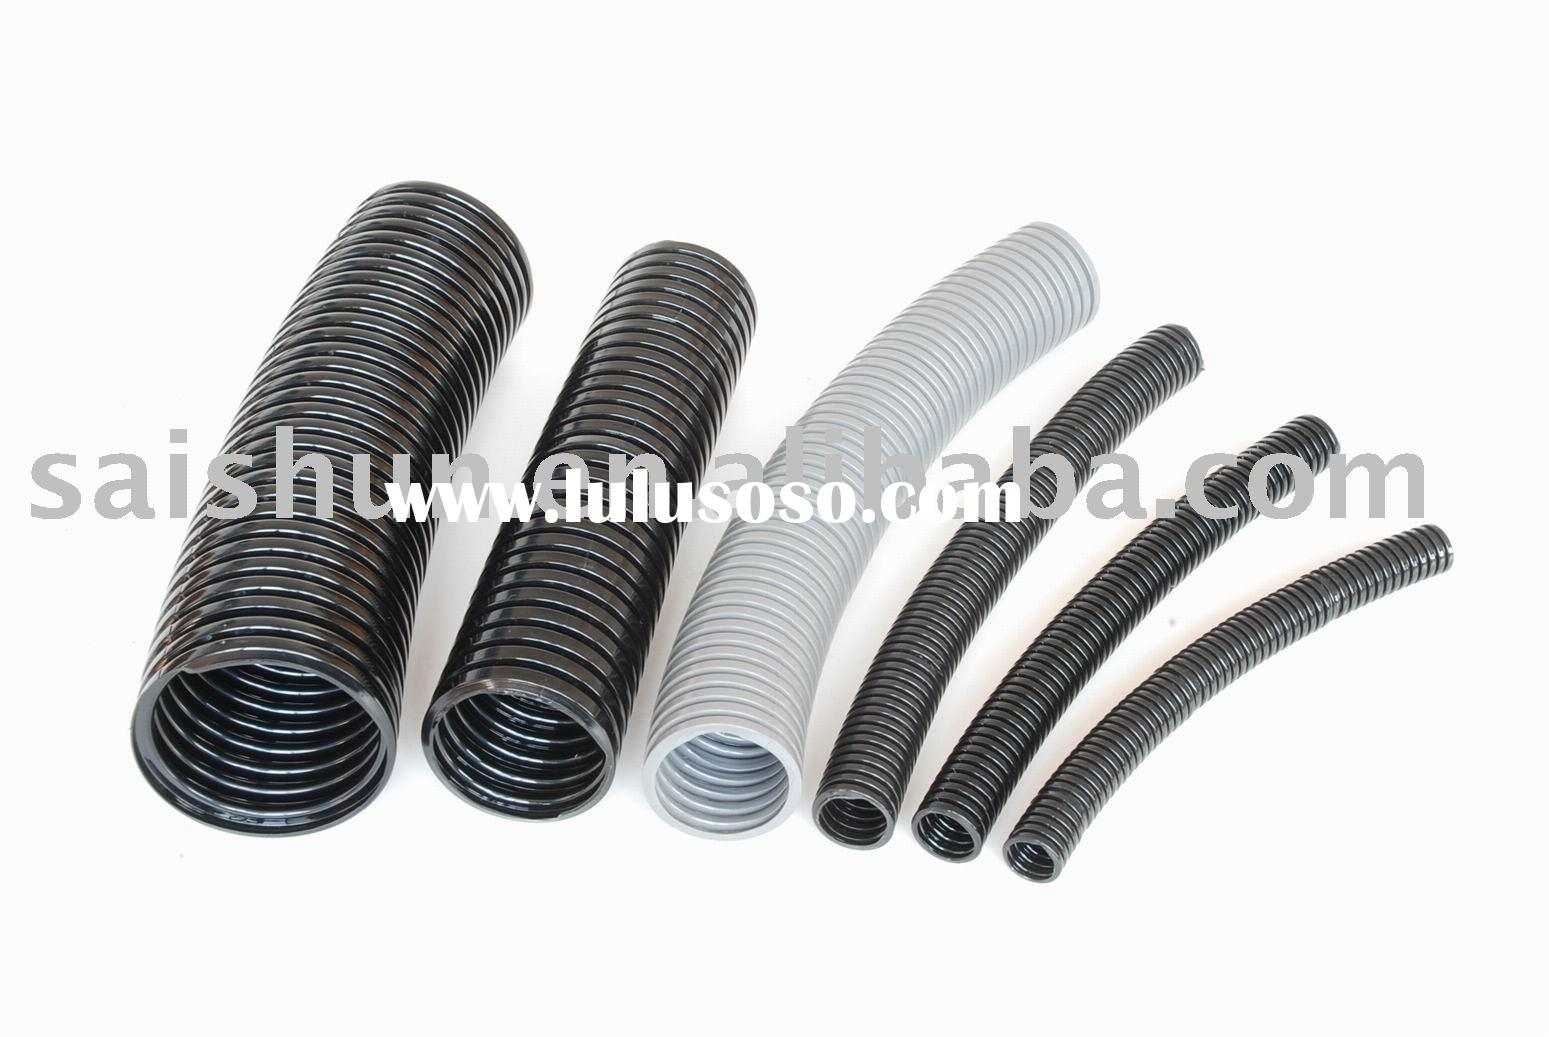 Flexible Wire Tubing : Plastic corrugated hose